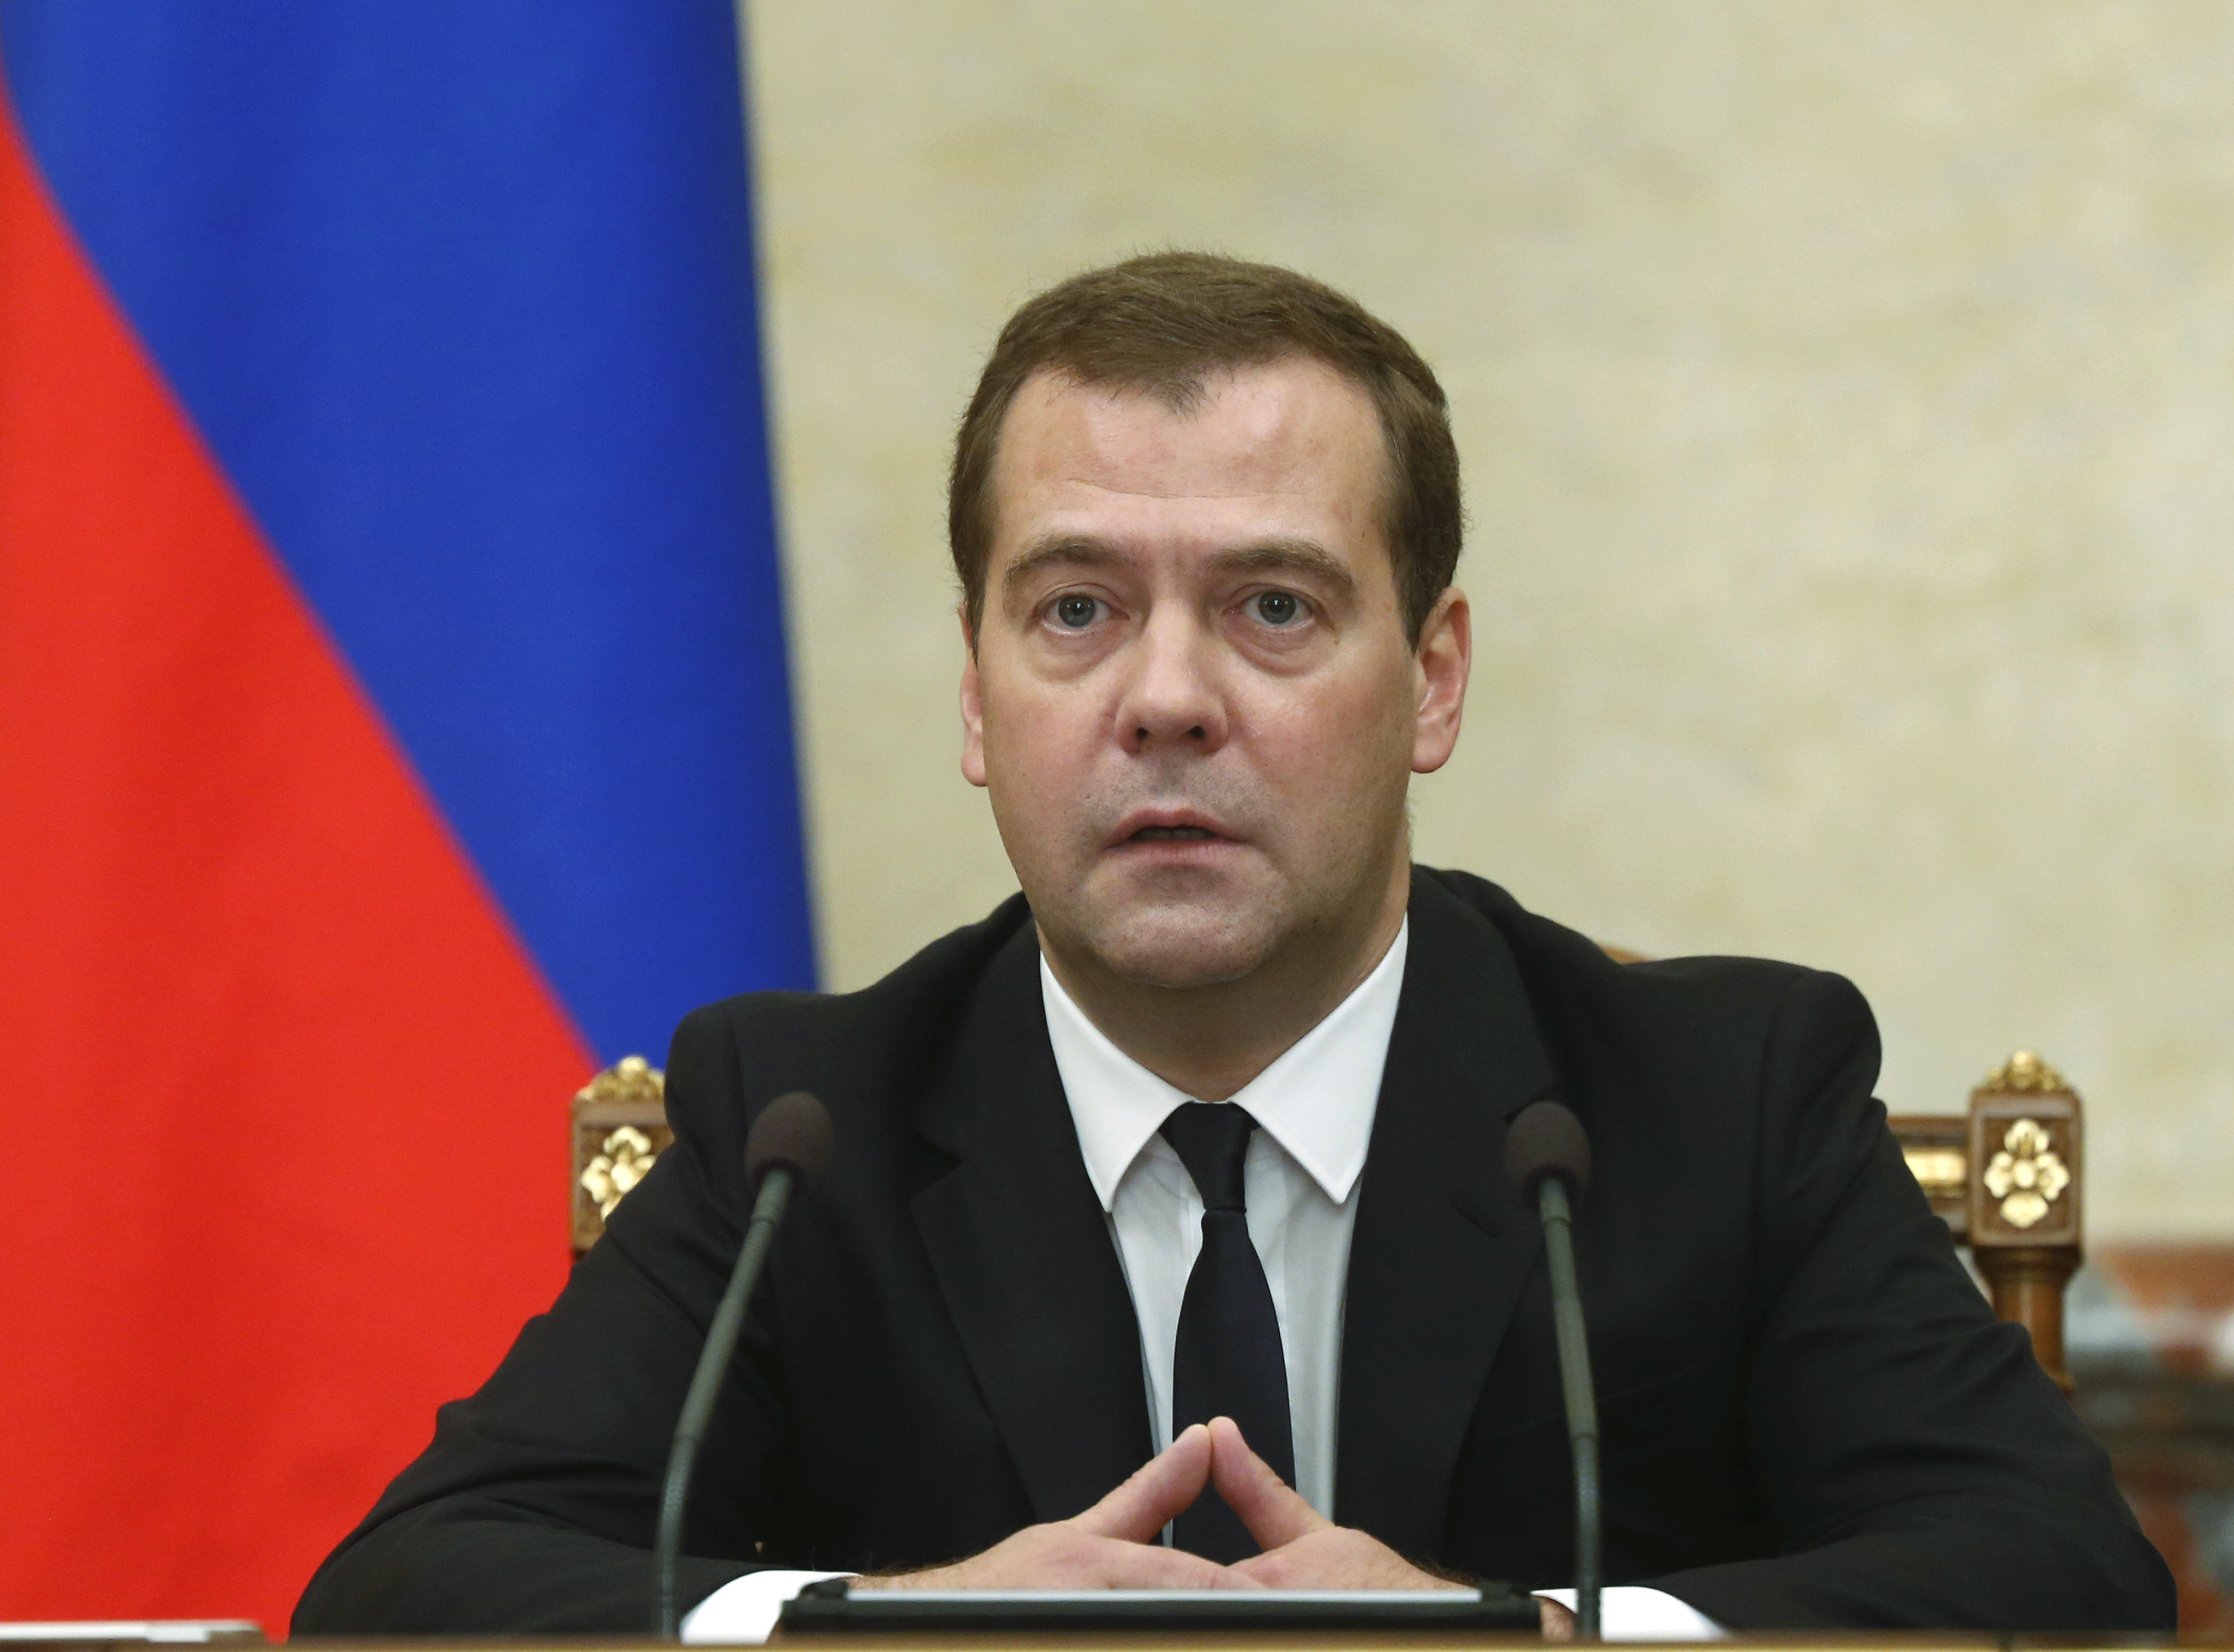 Russian Premier Dmitry Medvedev announces sanctions at the Cabinet meeting in Moscow on Thursday, Aug. 7.